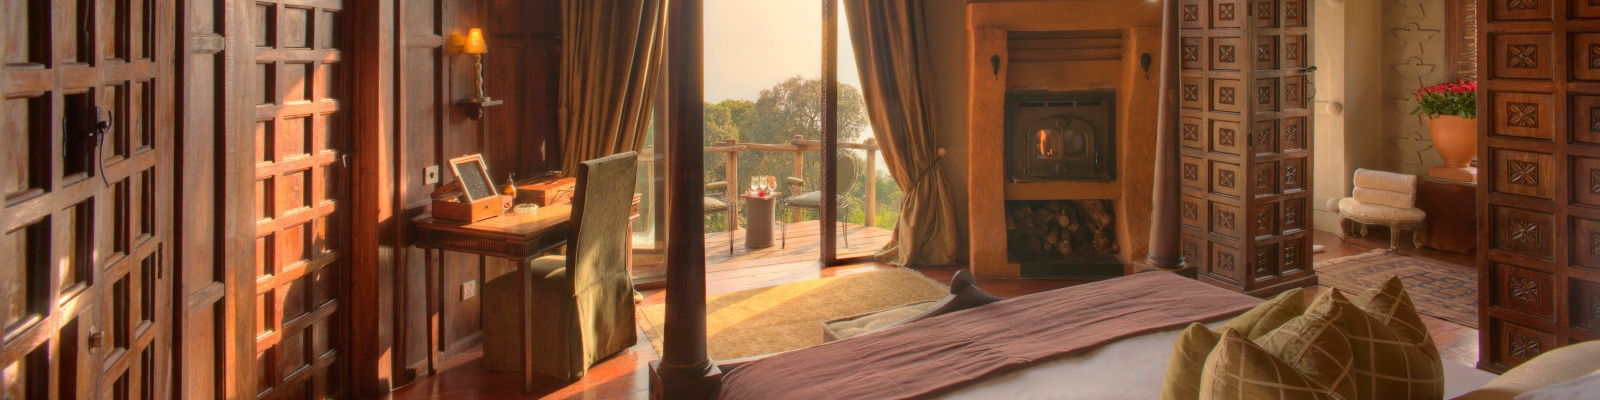 Accommodation in Ngorongoro Crater Region Tanzania Bedroom